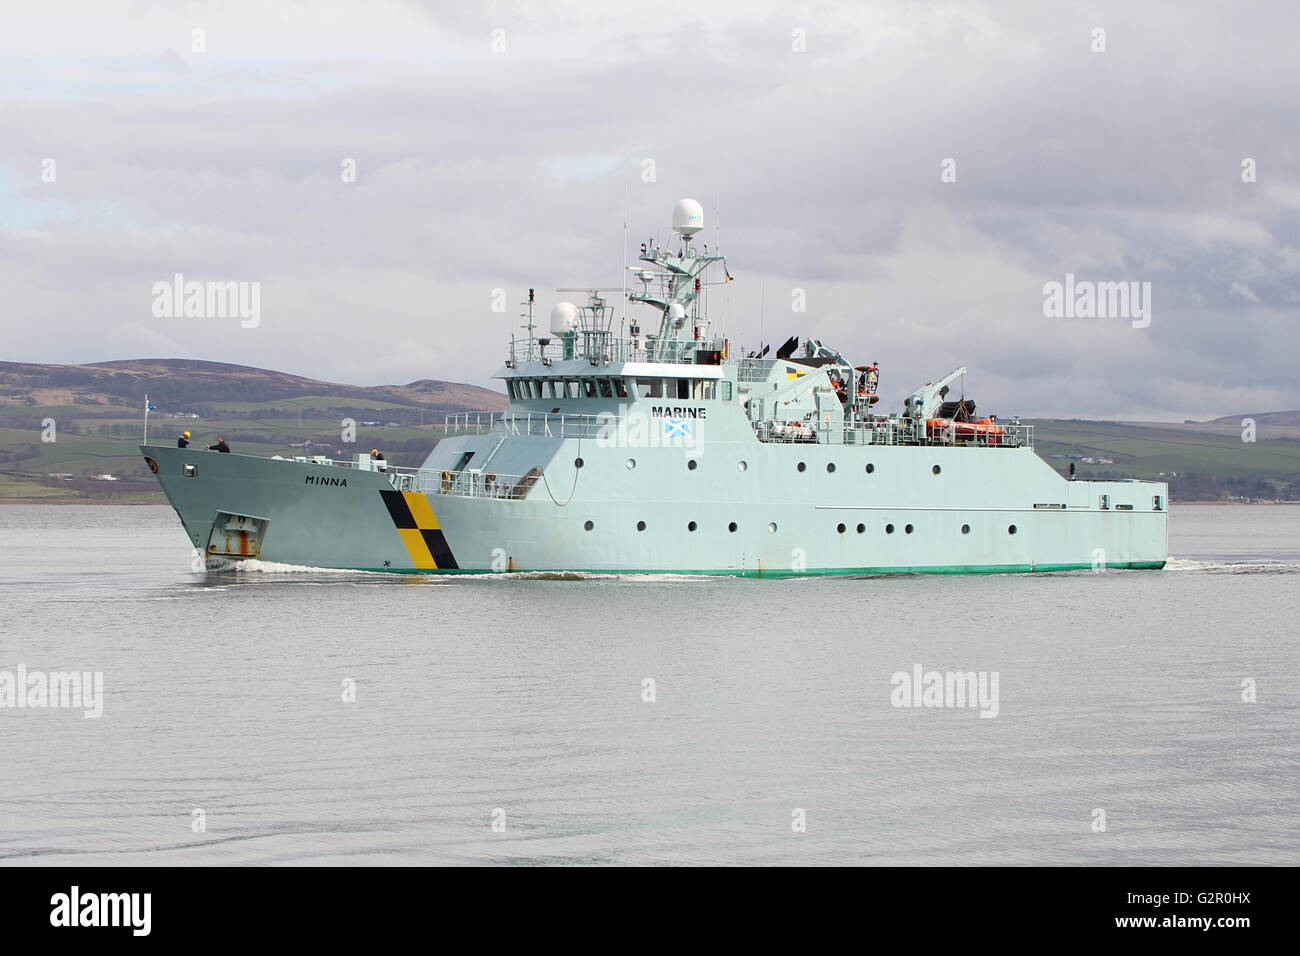 MPV Minna of Marine Scotland (formerly the Scottish Fisheries Protection Agency), heads out from Greenock on another - Stock Image